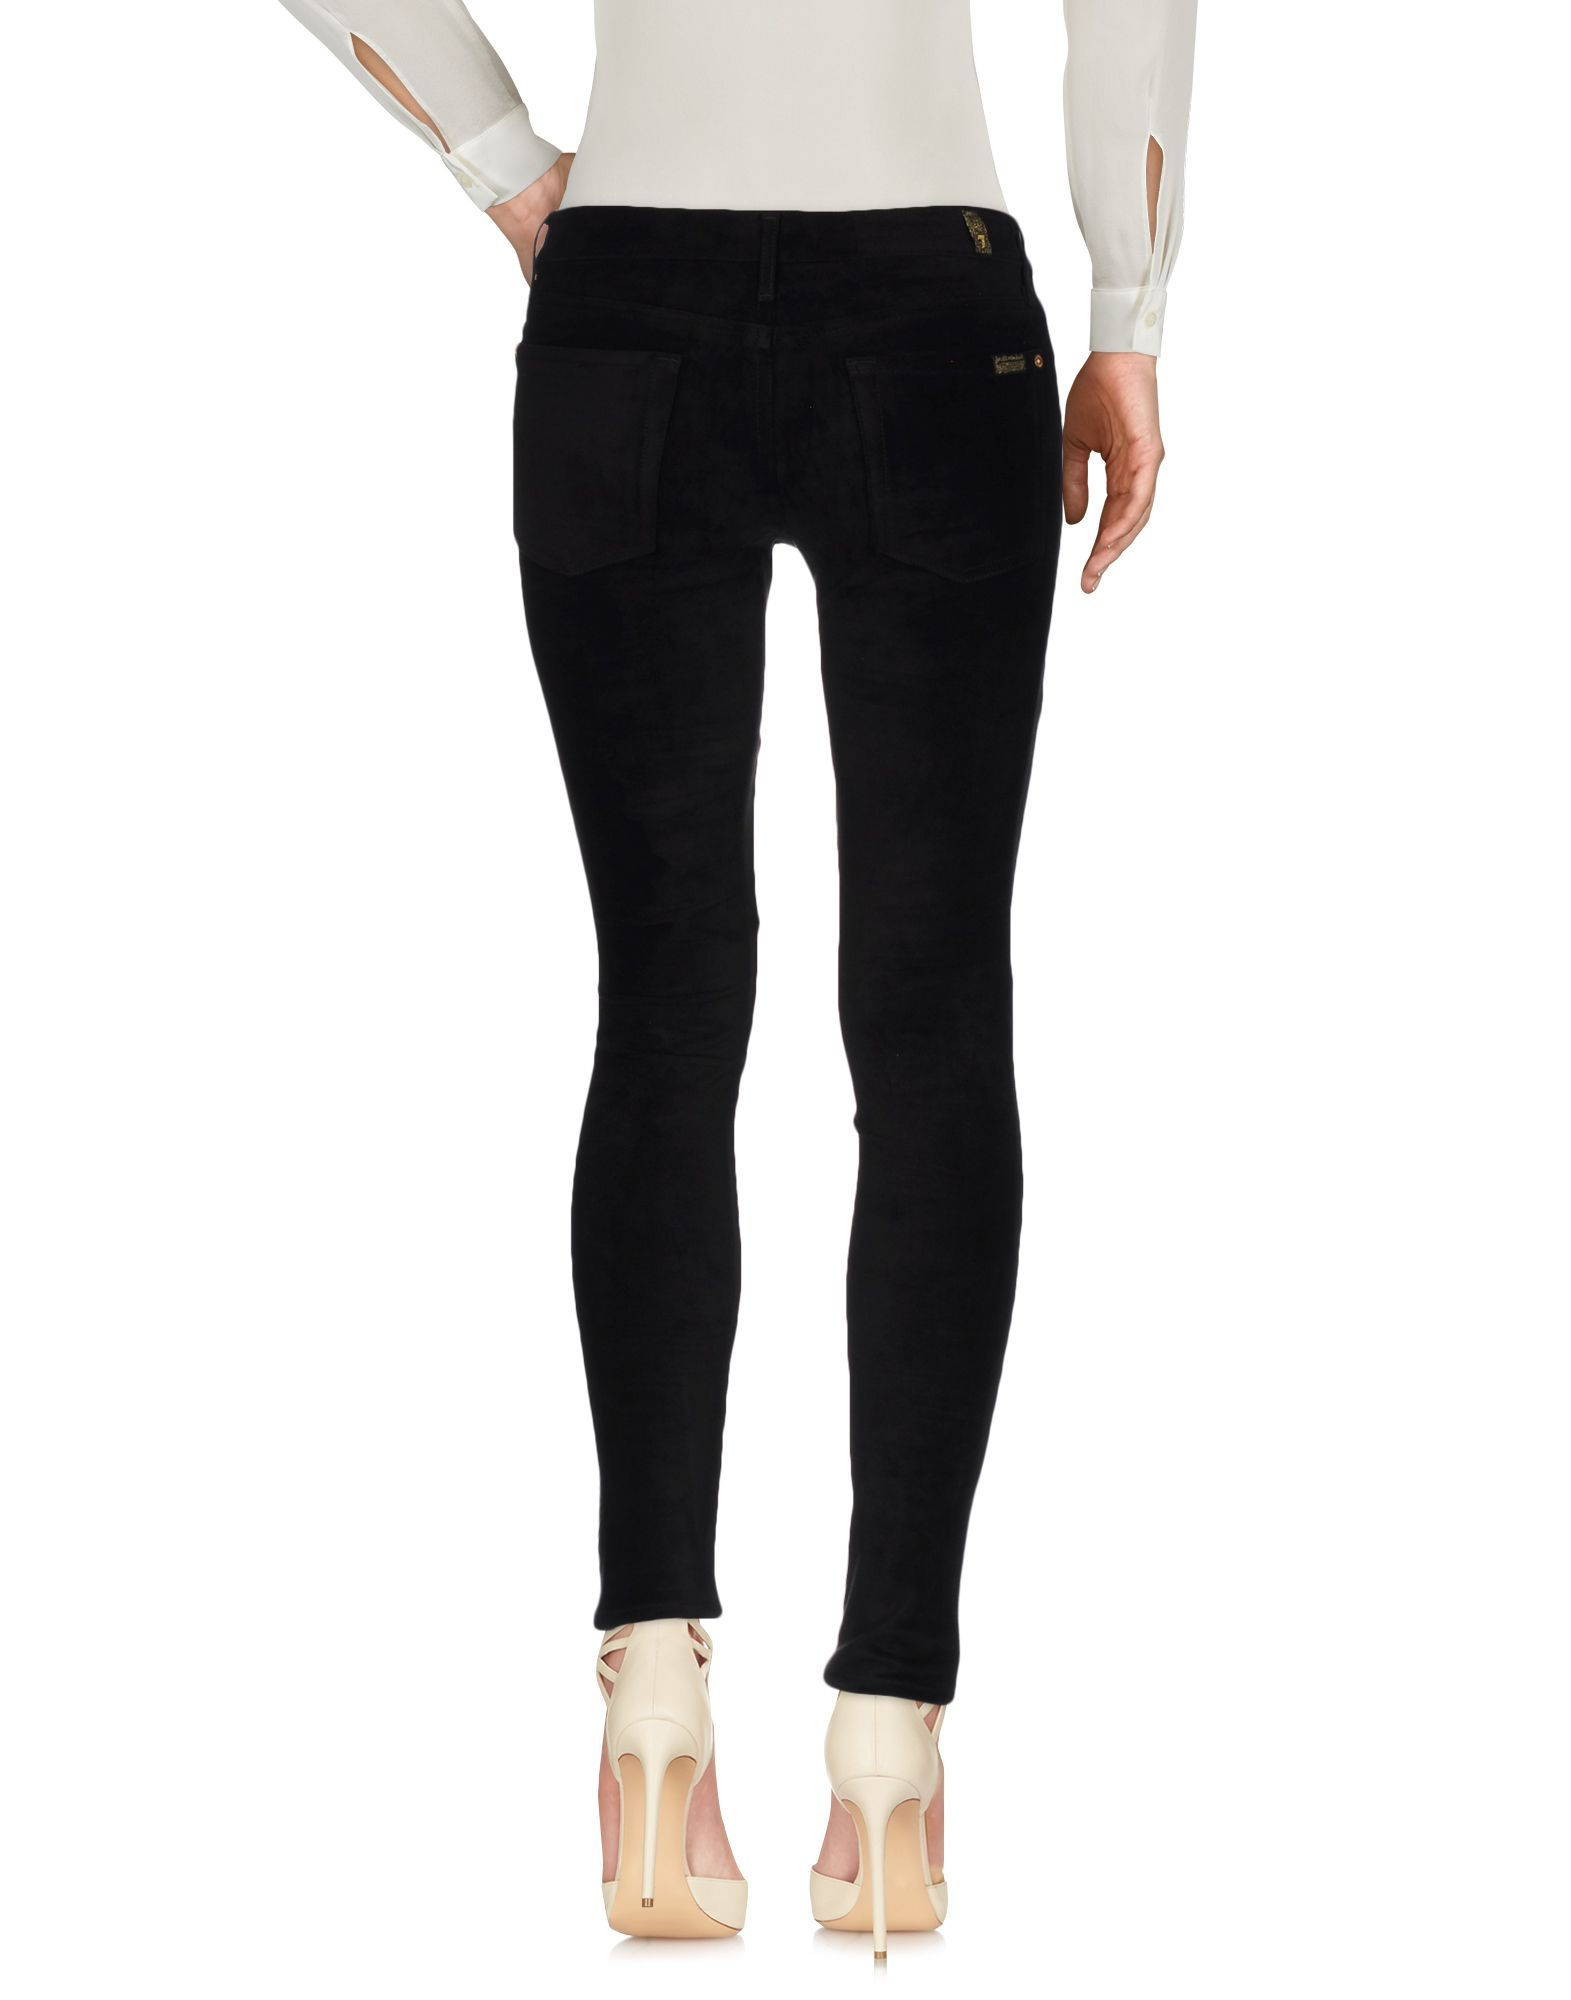 7 For All Mankind Black Mid Rise Slim Fit Trousers